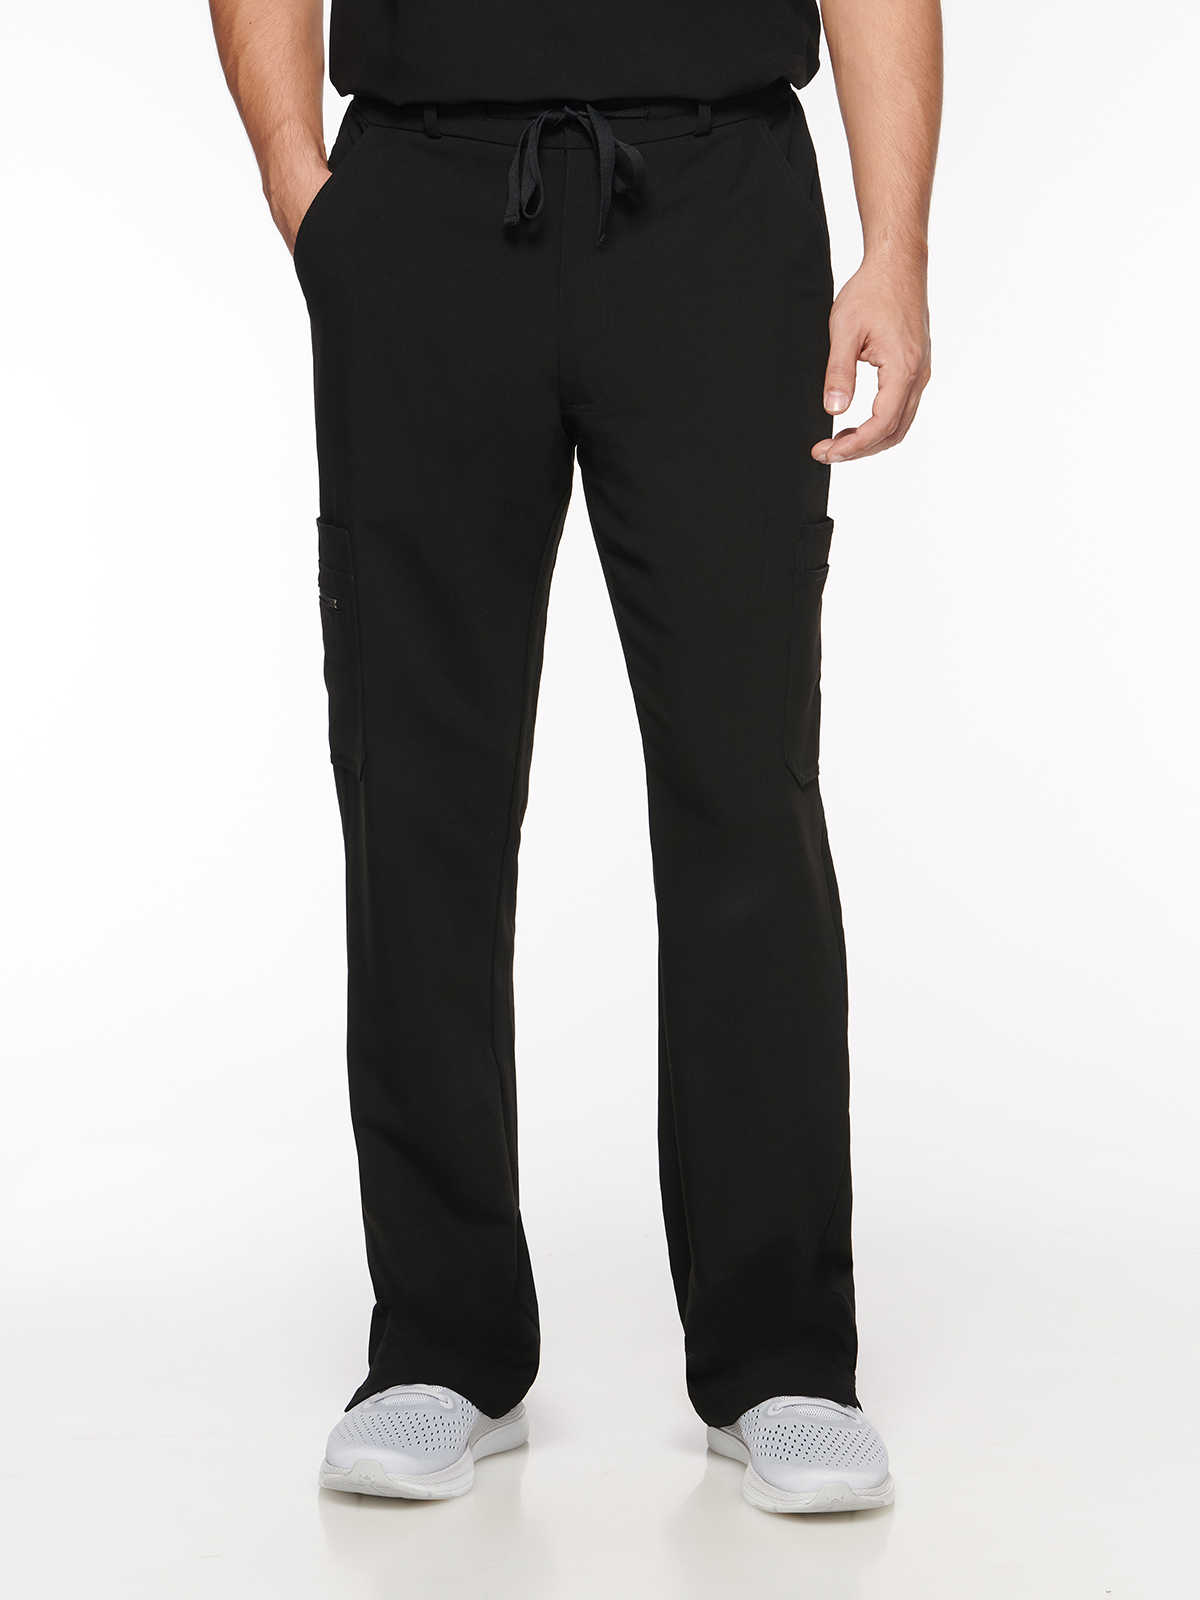 Mens Pant French-Fly Pant with 9 Pockets